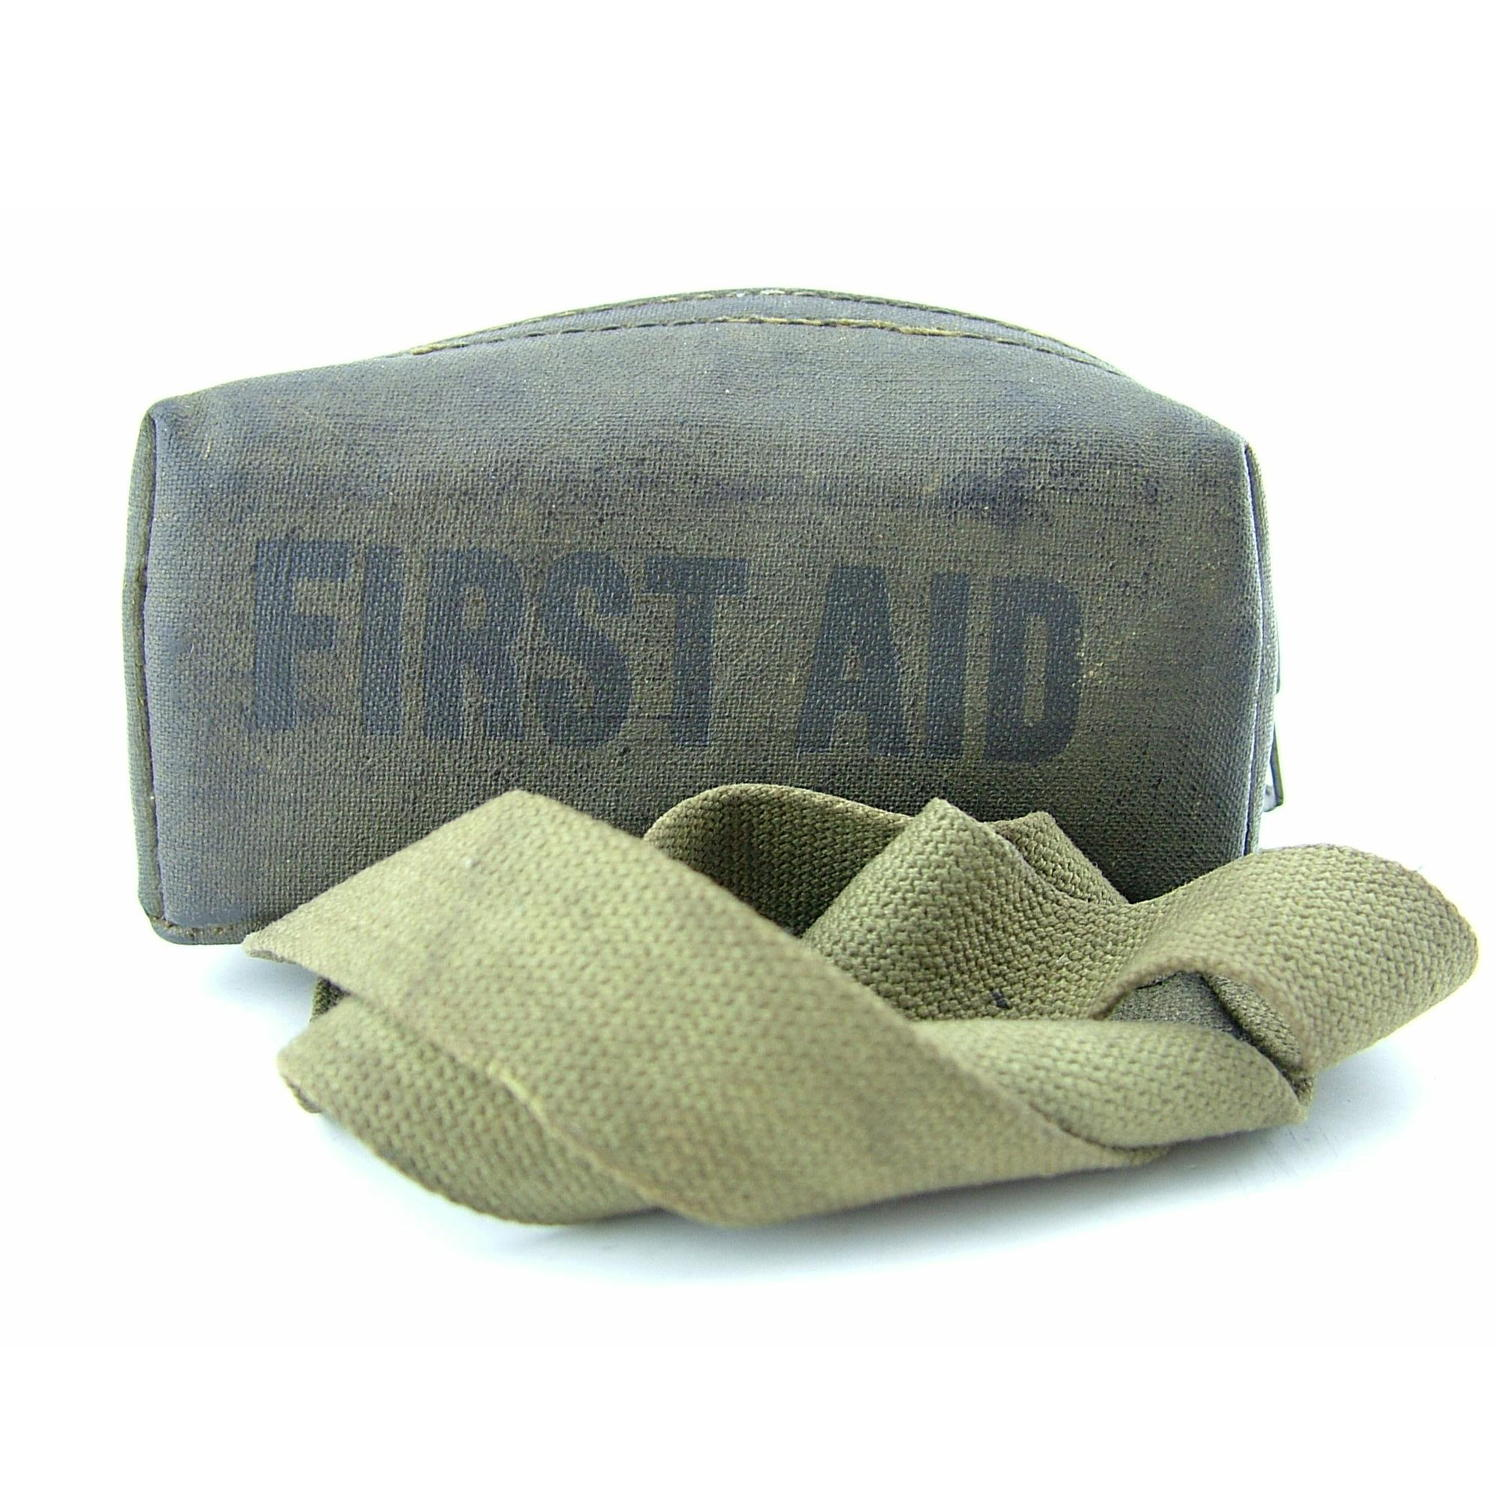 USAAF / Airborne parachute first aid pack